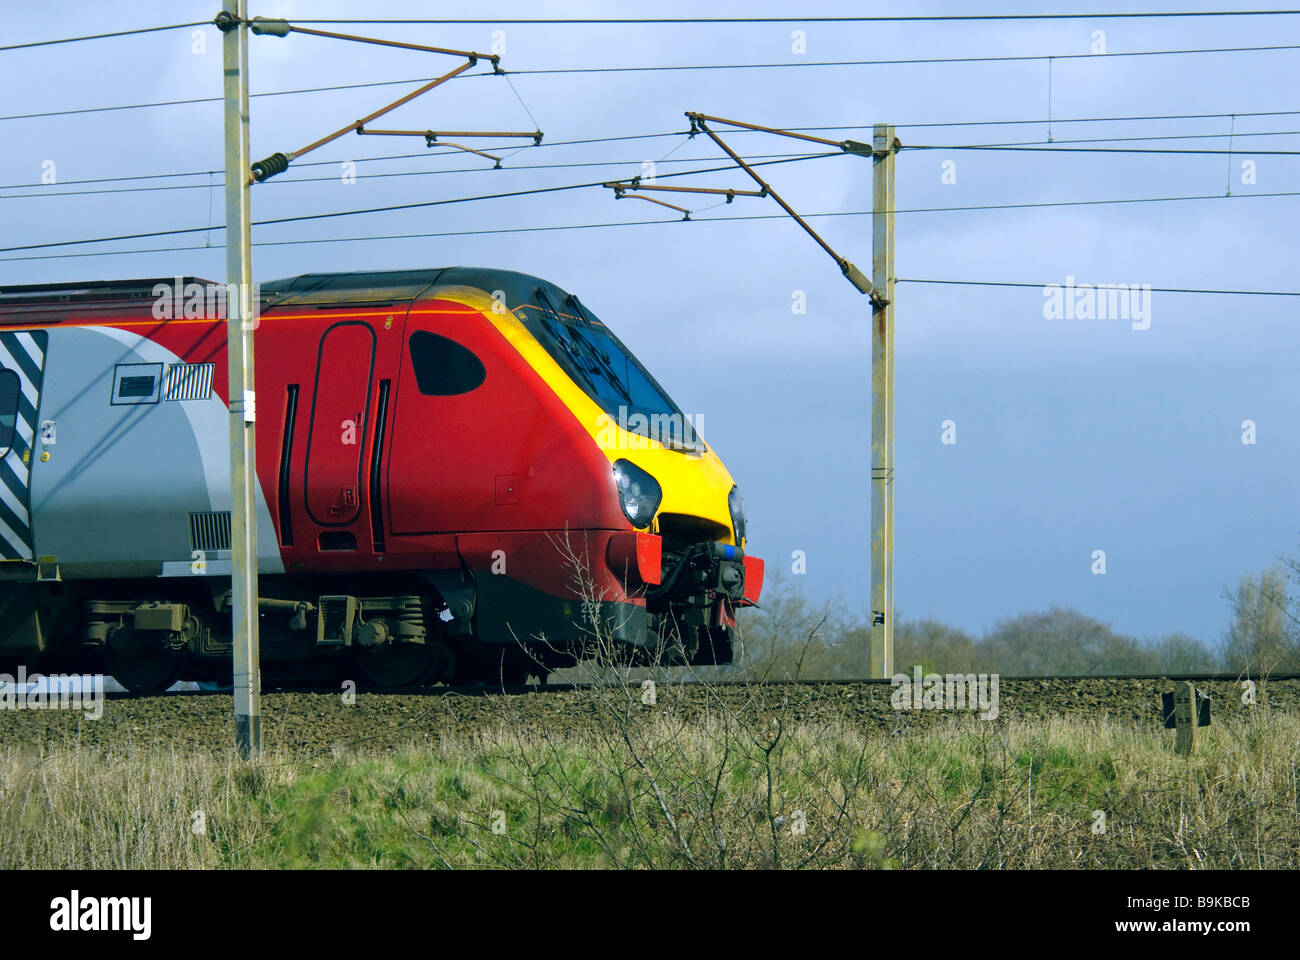 overhead cablesVirgin train diesel Voyager with overhead power cables - Stock Image